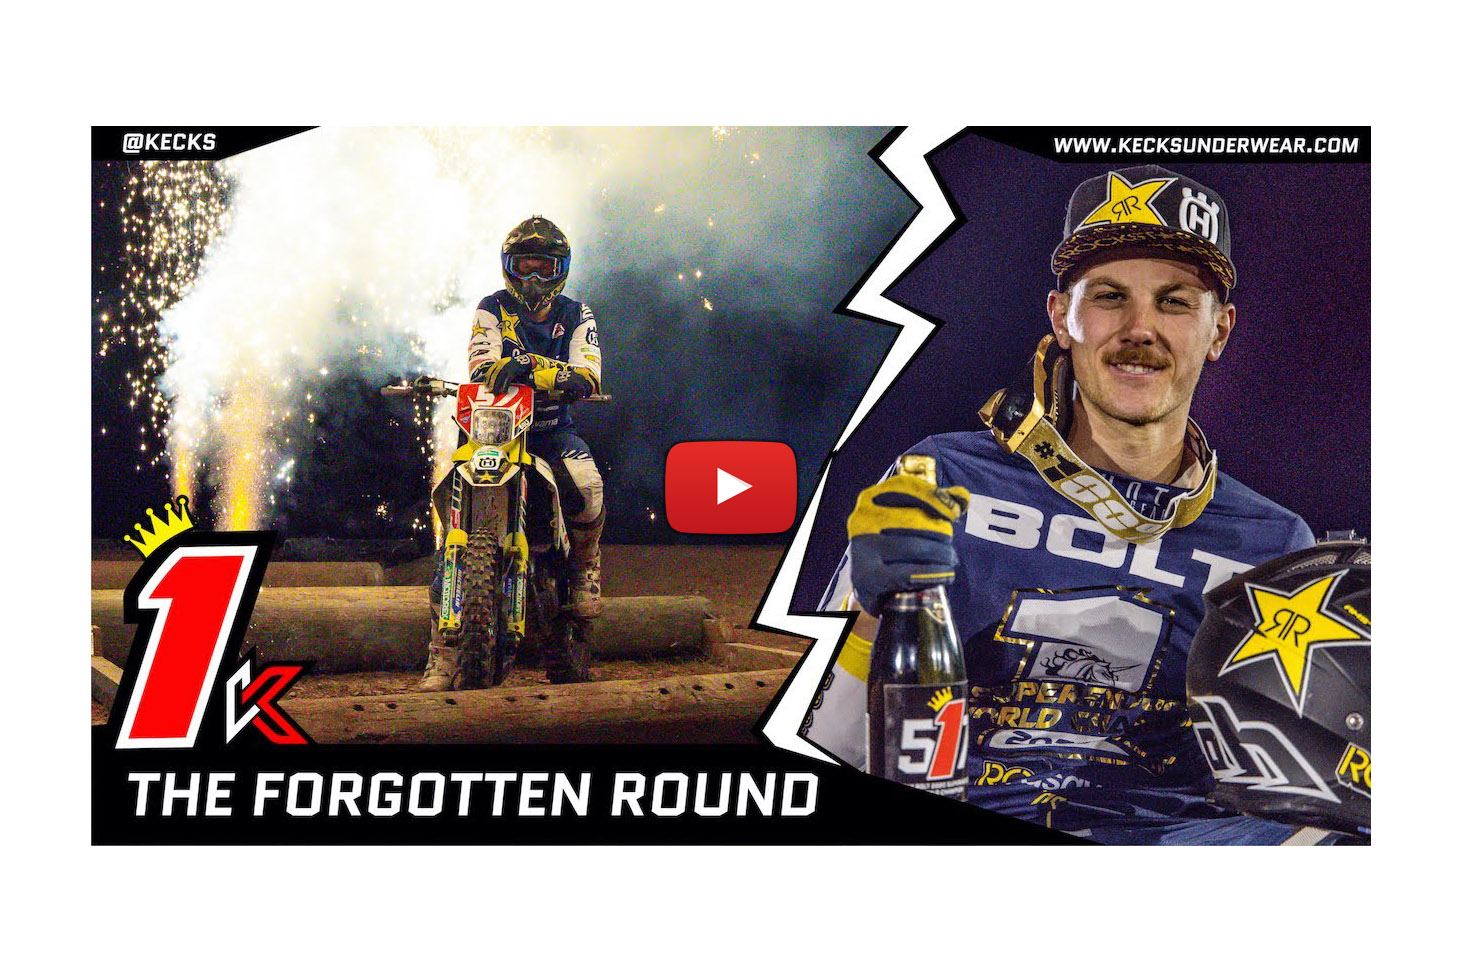 The Forgotten Round - Billy Bolt 2020 Super Enduro World Champion